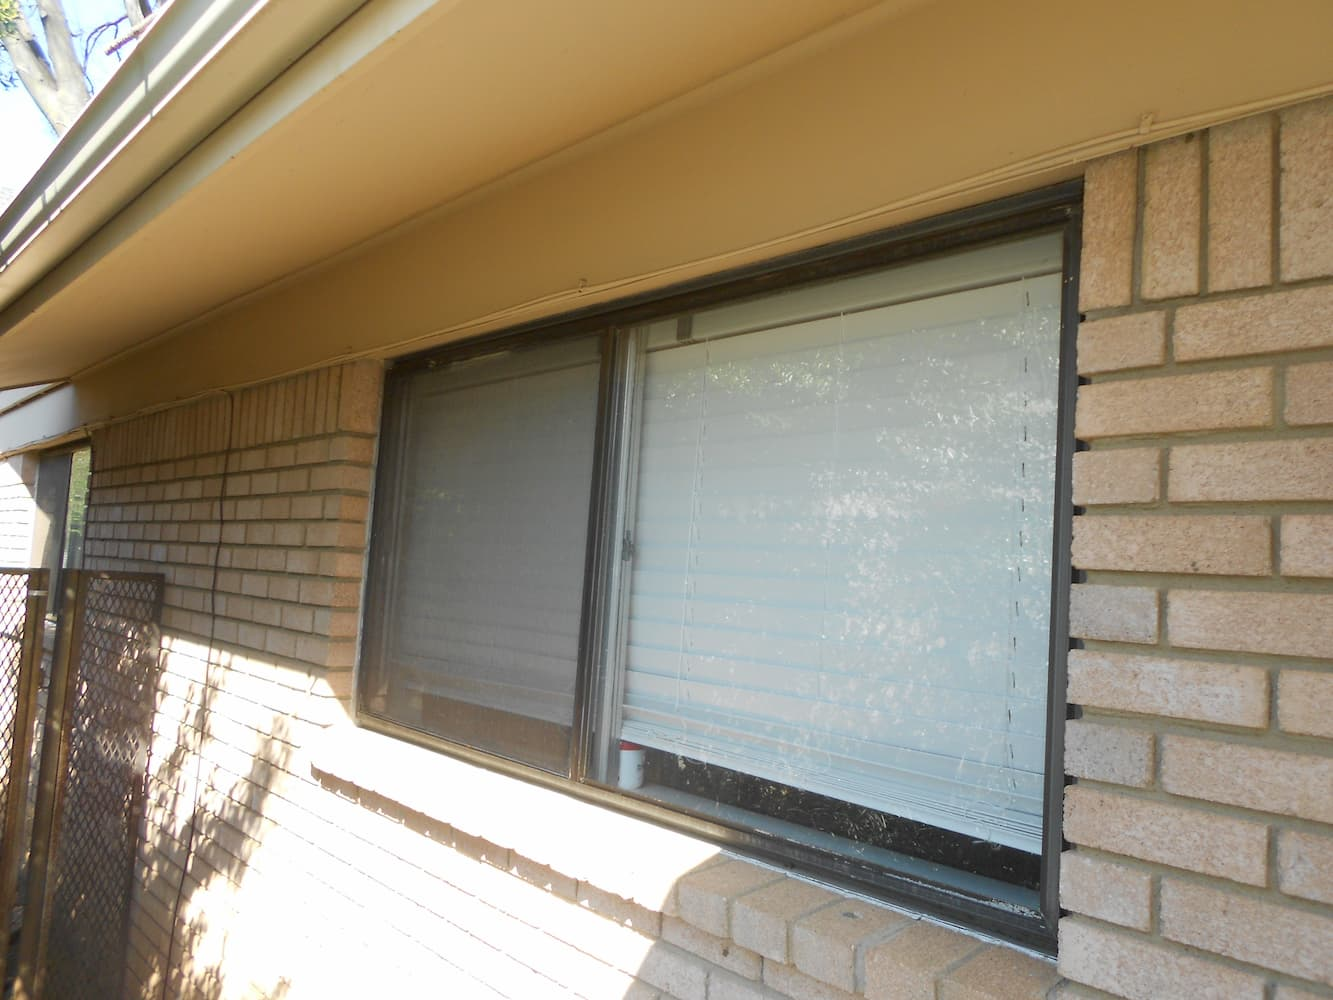 Exterior view of small casement windows with blinds